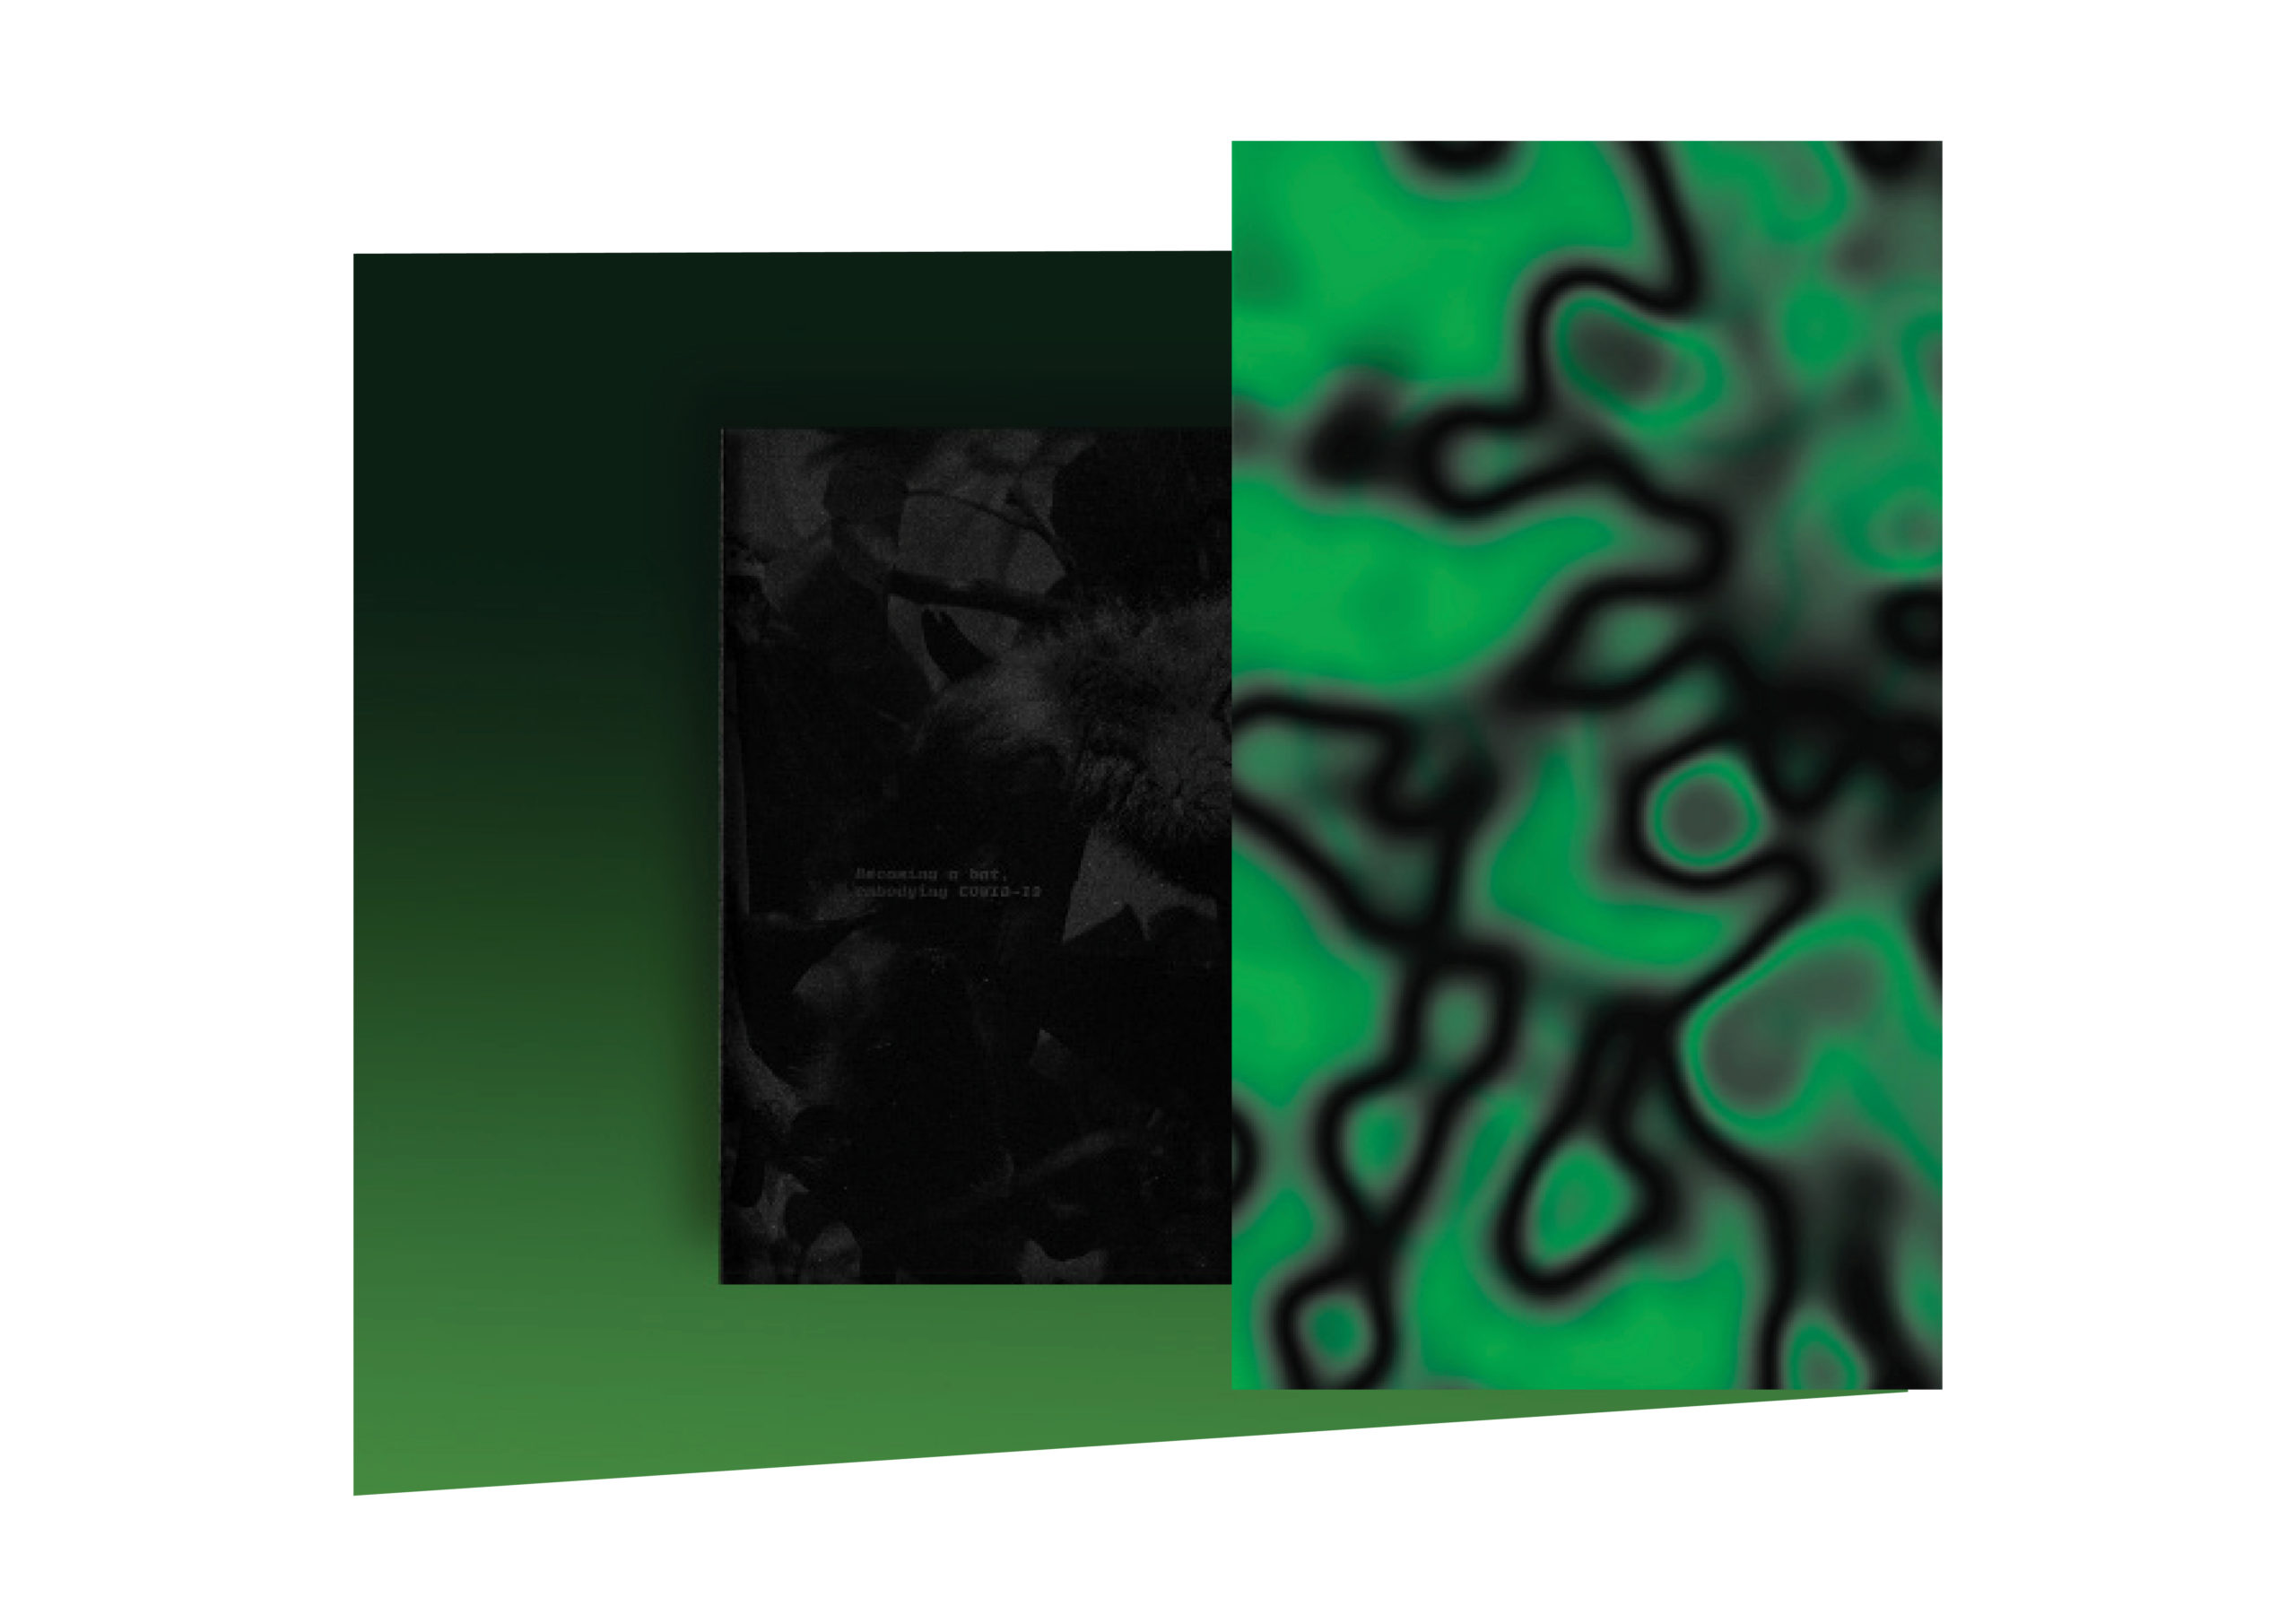 Image of a book with a green digital overlay of organic shapes out of focus